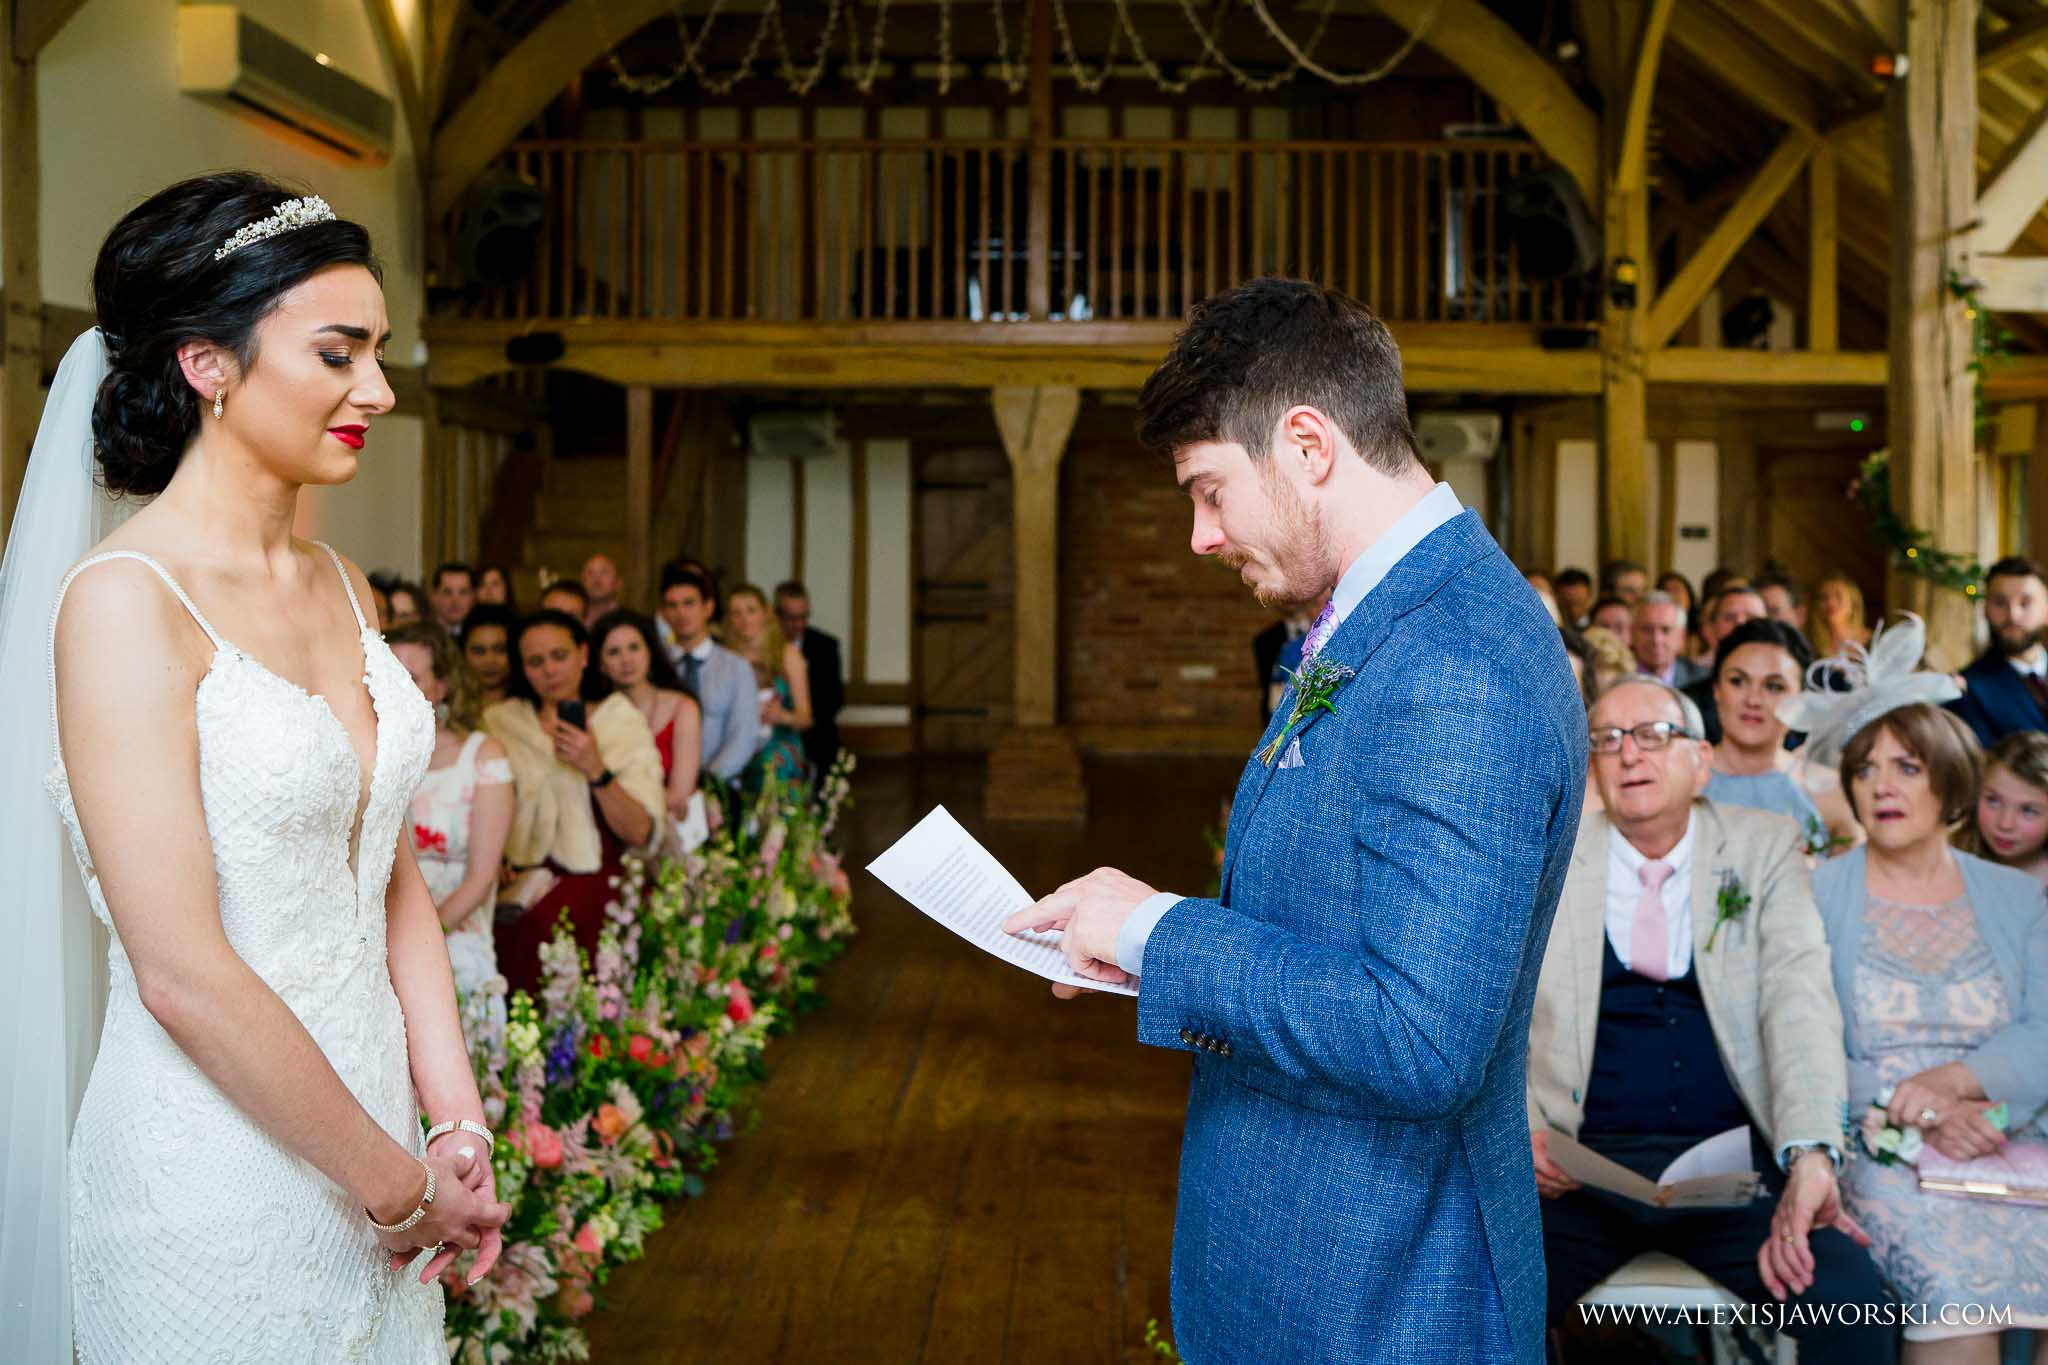 personal vows during the ceremony